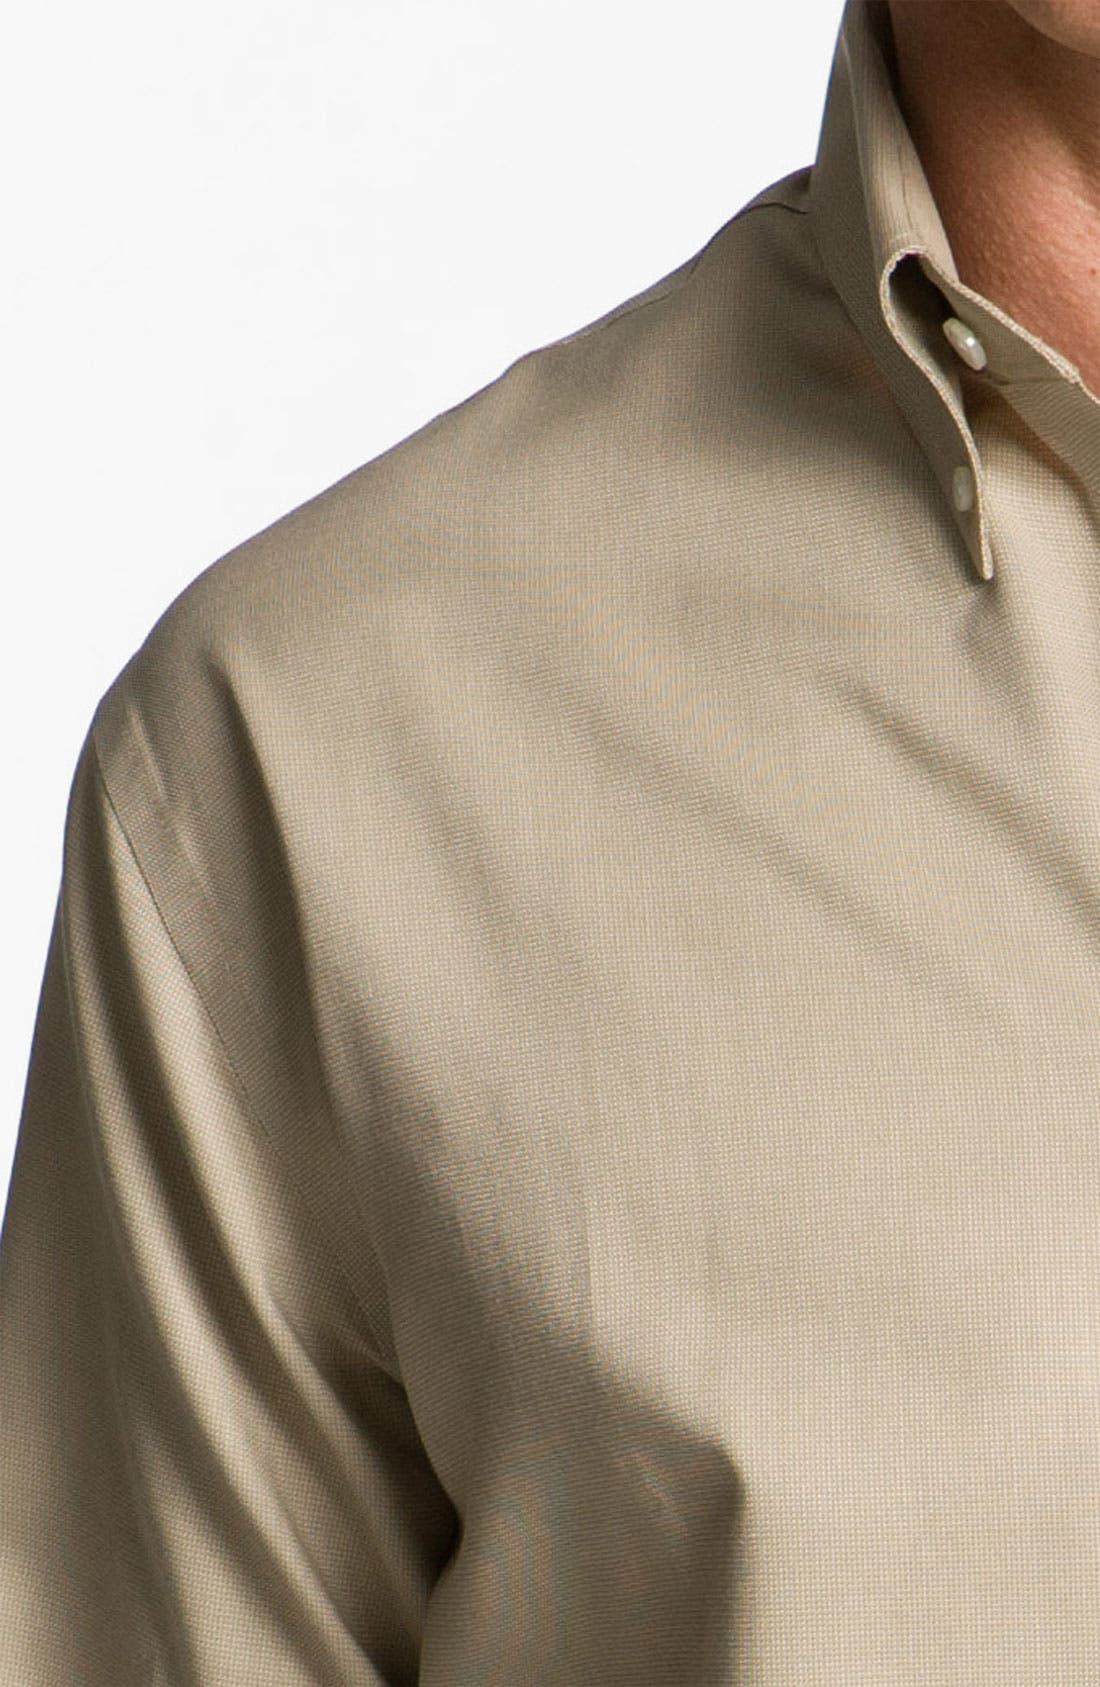 Alternate Image 3  - Cutter & Buck 'Nailshead - Epic Easy Care' Classic Fit Sport Shirt (Big & Tall)